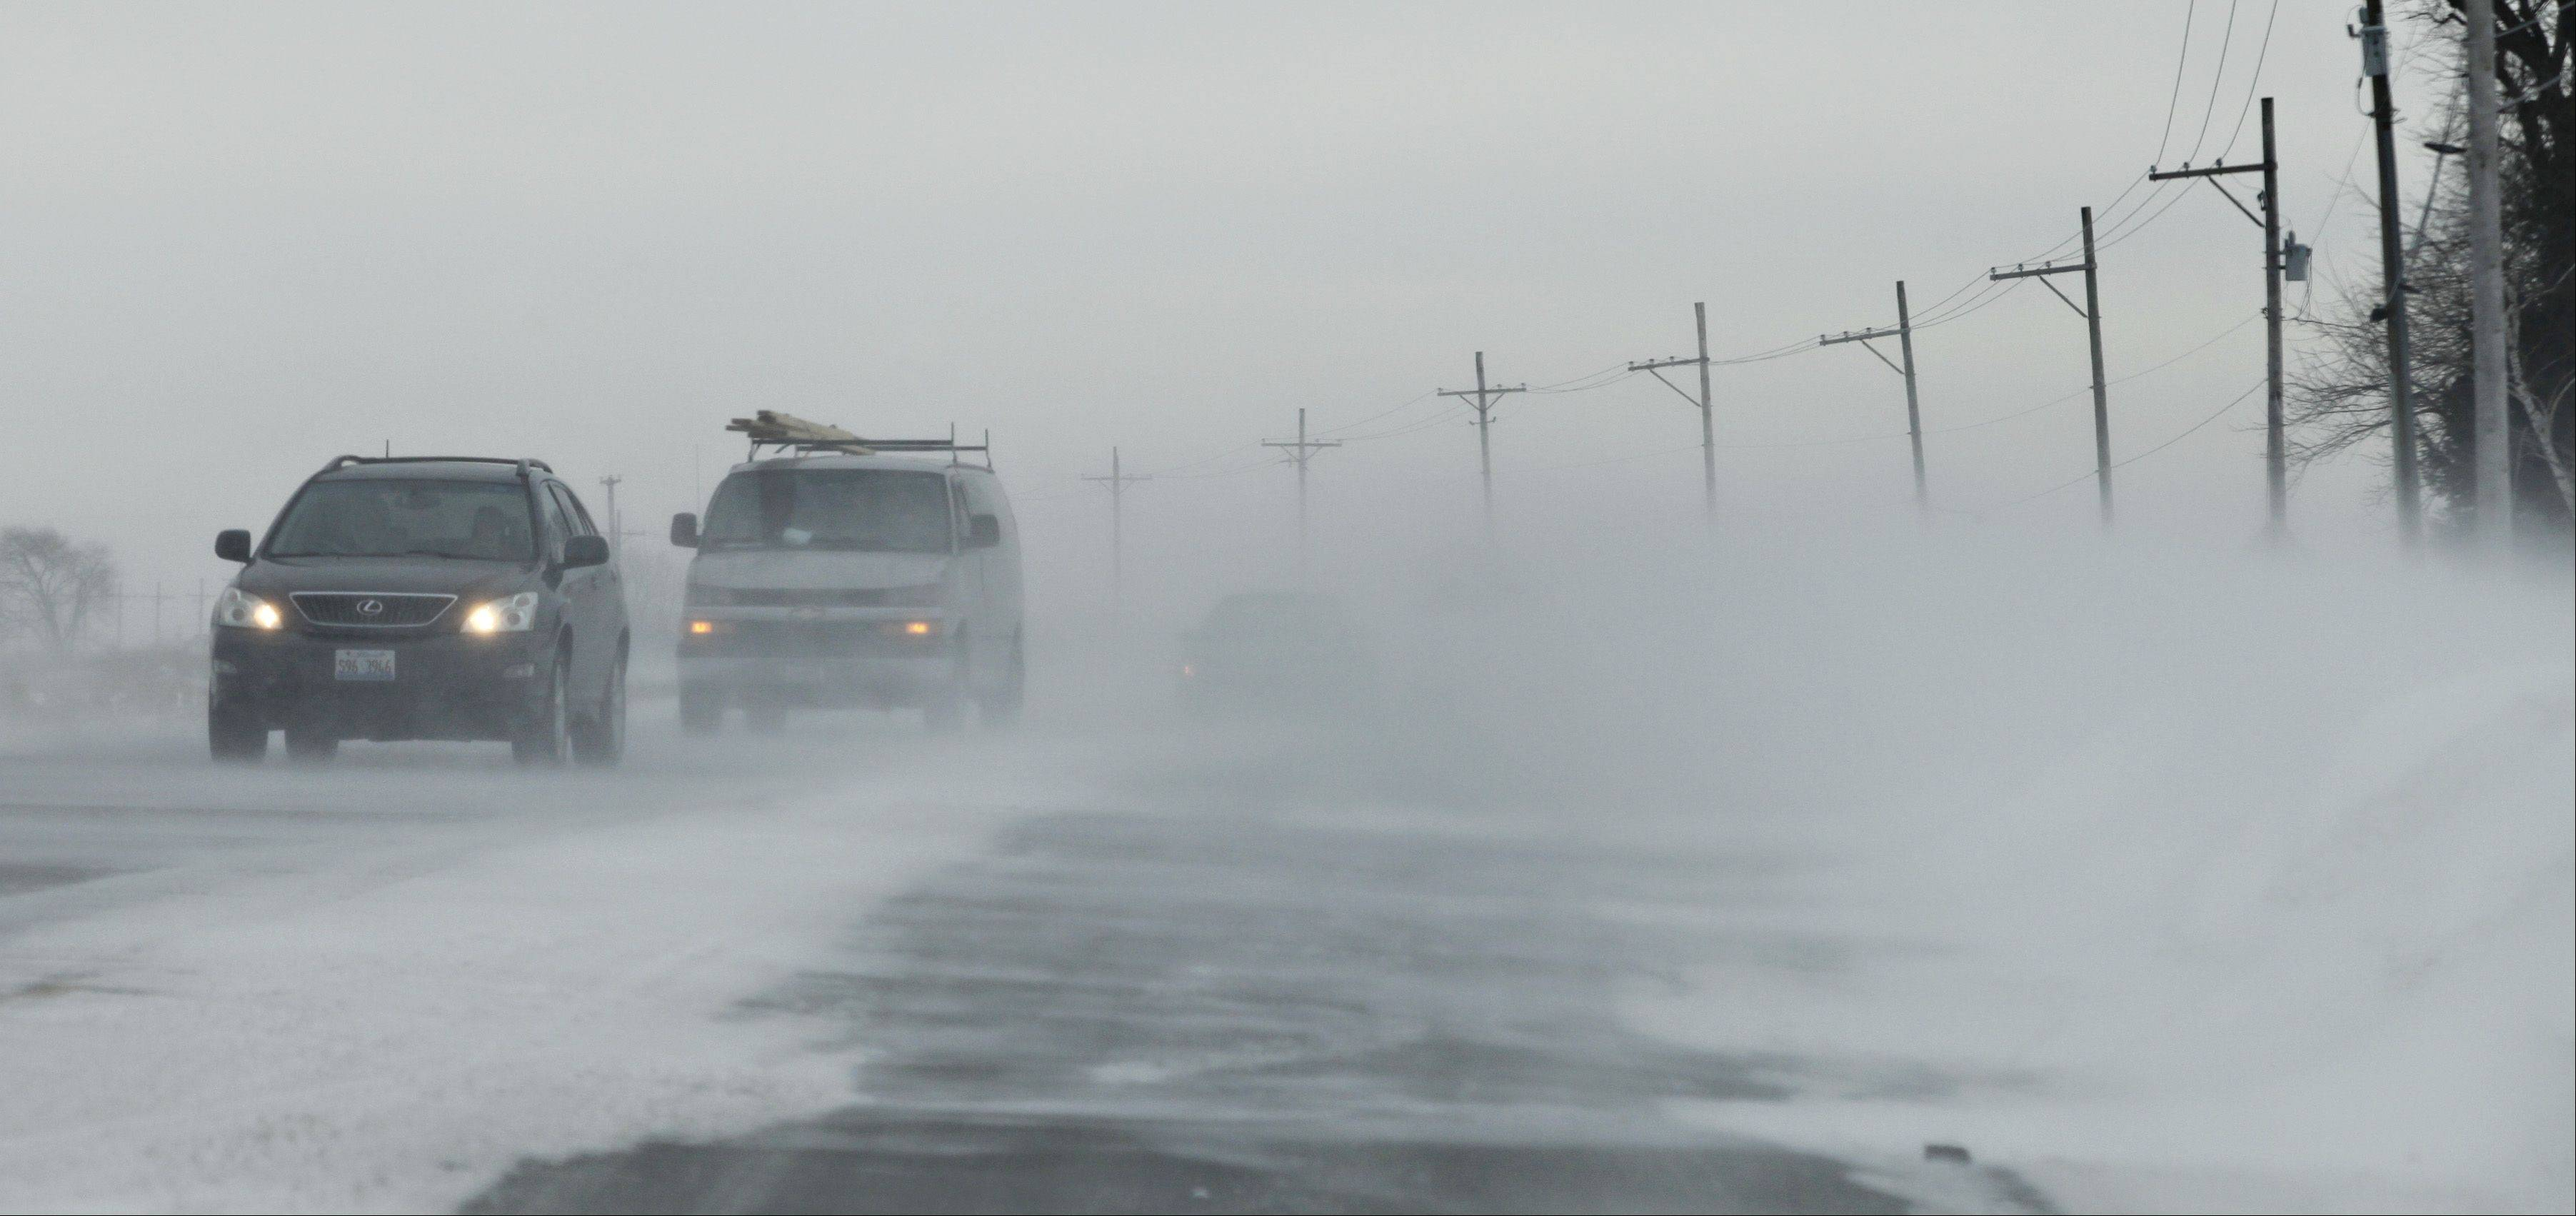 High winds Thursday created near whiteout conditions on rural roads in Kane County, as pictured here on Huntley Road east of Square Barn Road near Gilberts. Several accidents Thursday were also blamed on snow-covered or icy roads.